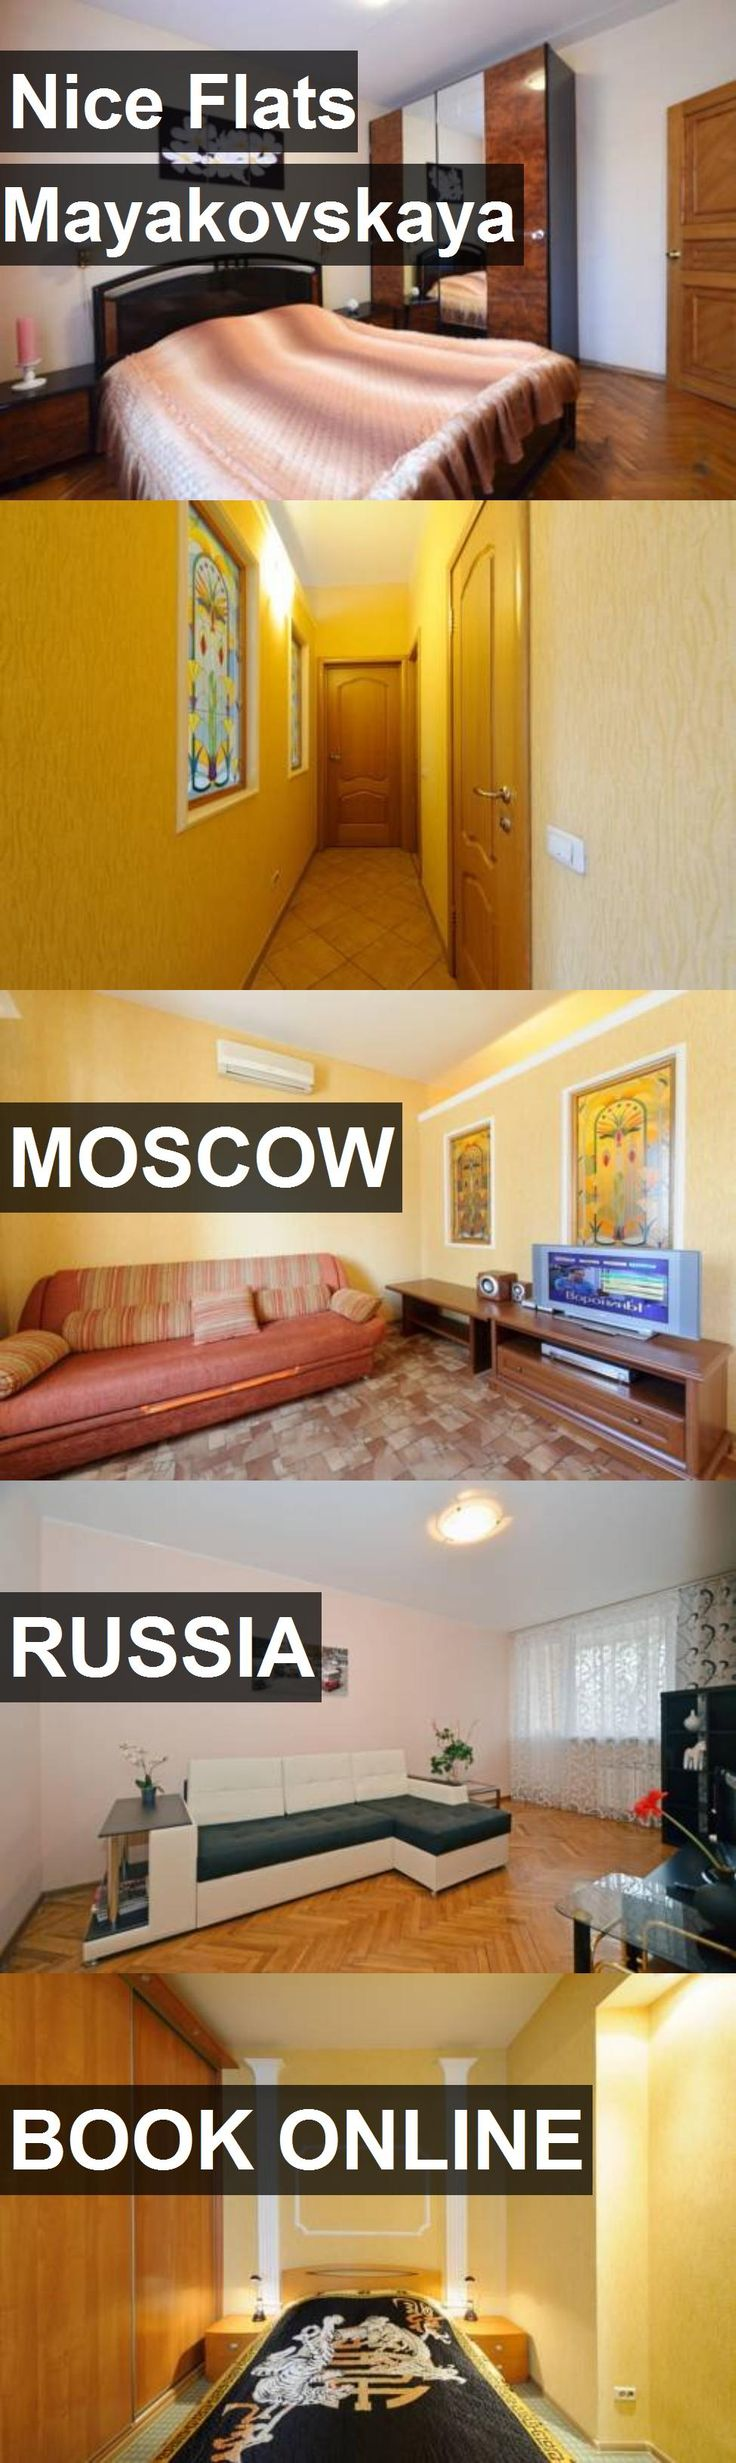 Hotel Nice Flats Mayakovskaya in Moscow, Russia. For more information, photos, reviews and best prices please follow the link. #Russia #Moscow #travel #vacation #hotel